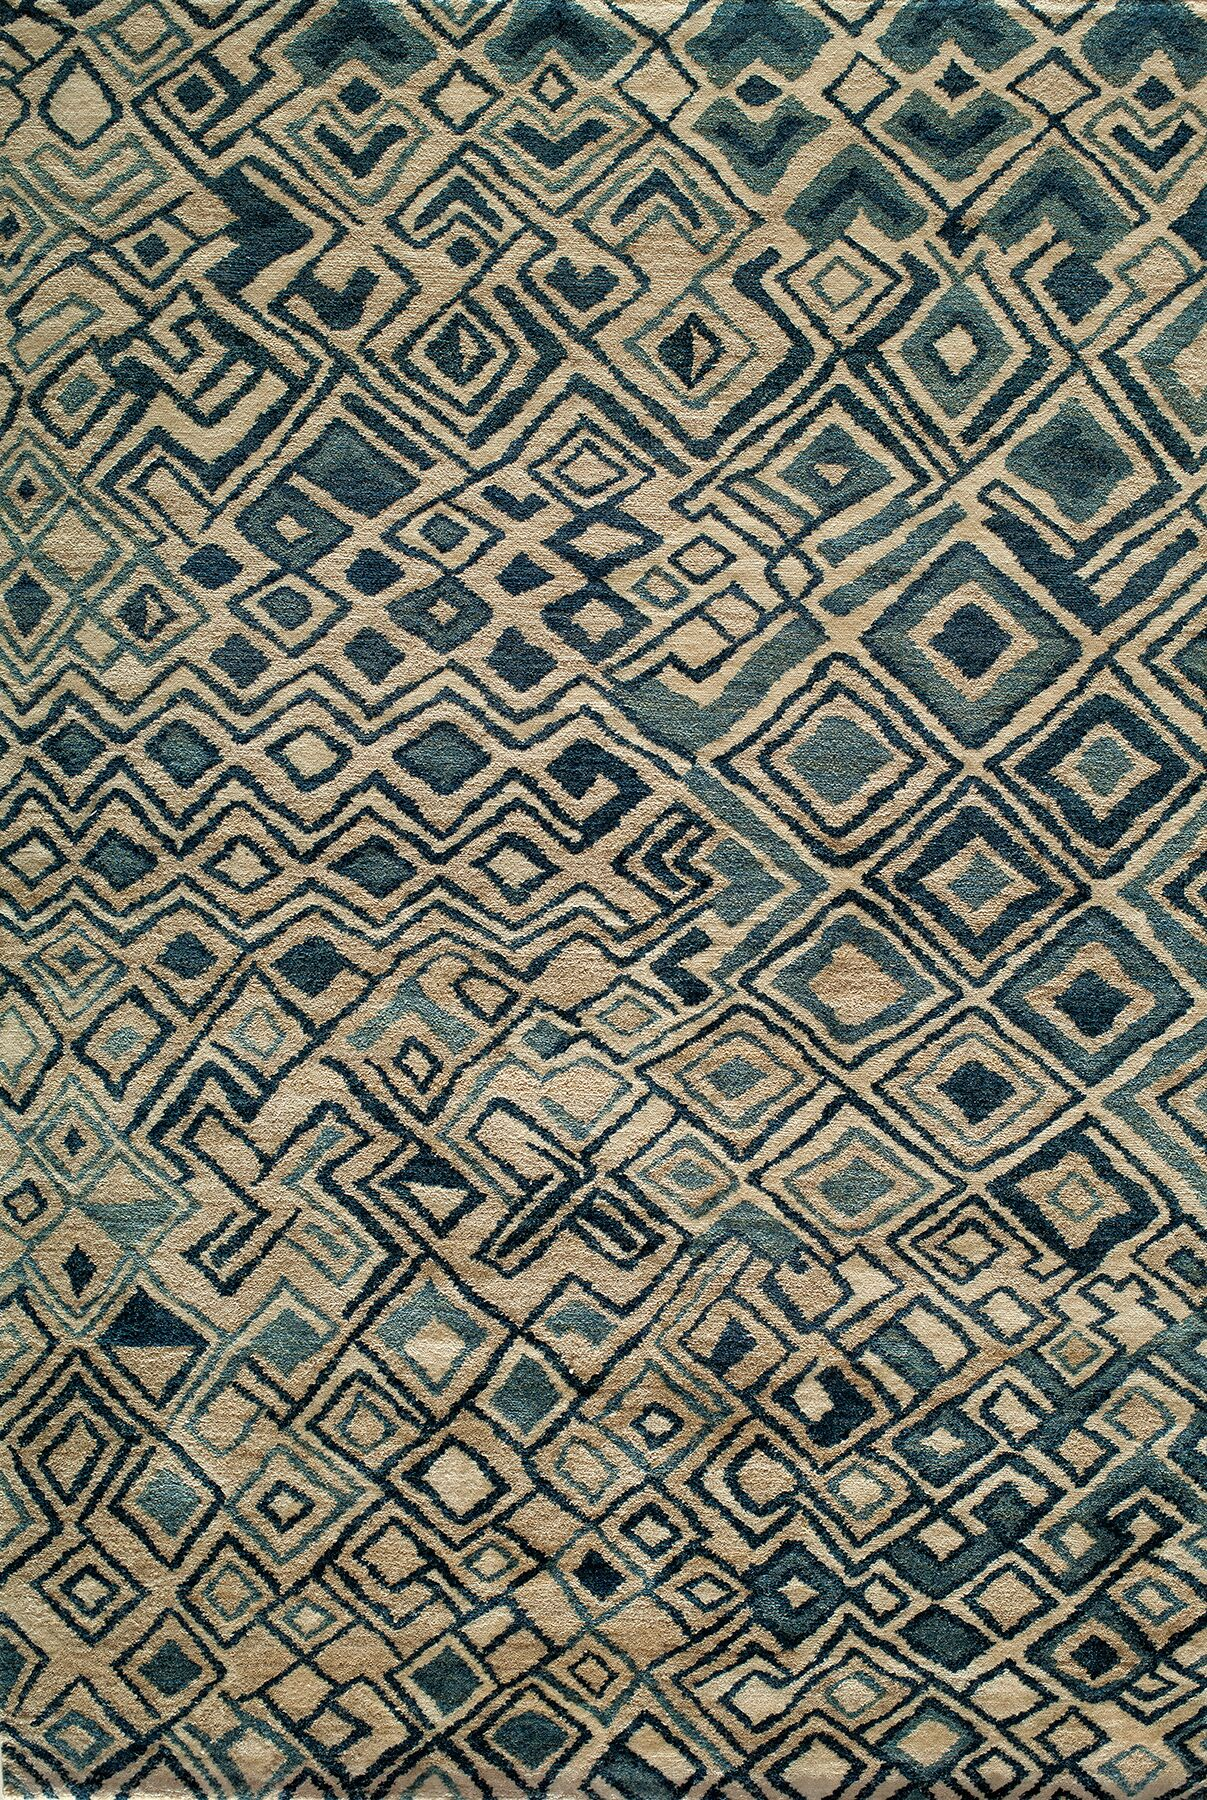 Zaria Hand-Knotted Teal/Cream Rug Rug Size: Rectangle 2' x 3'